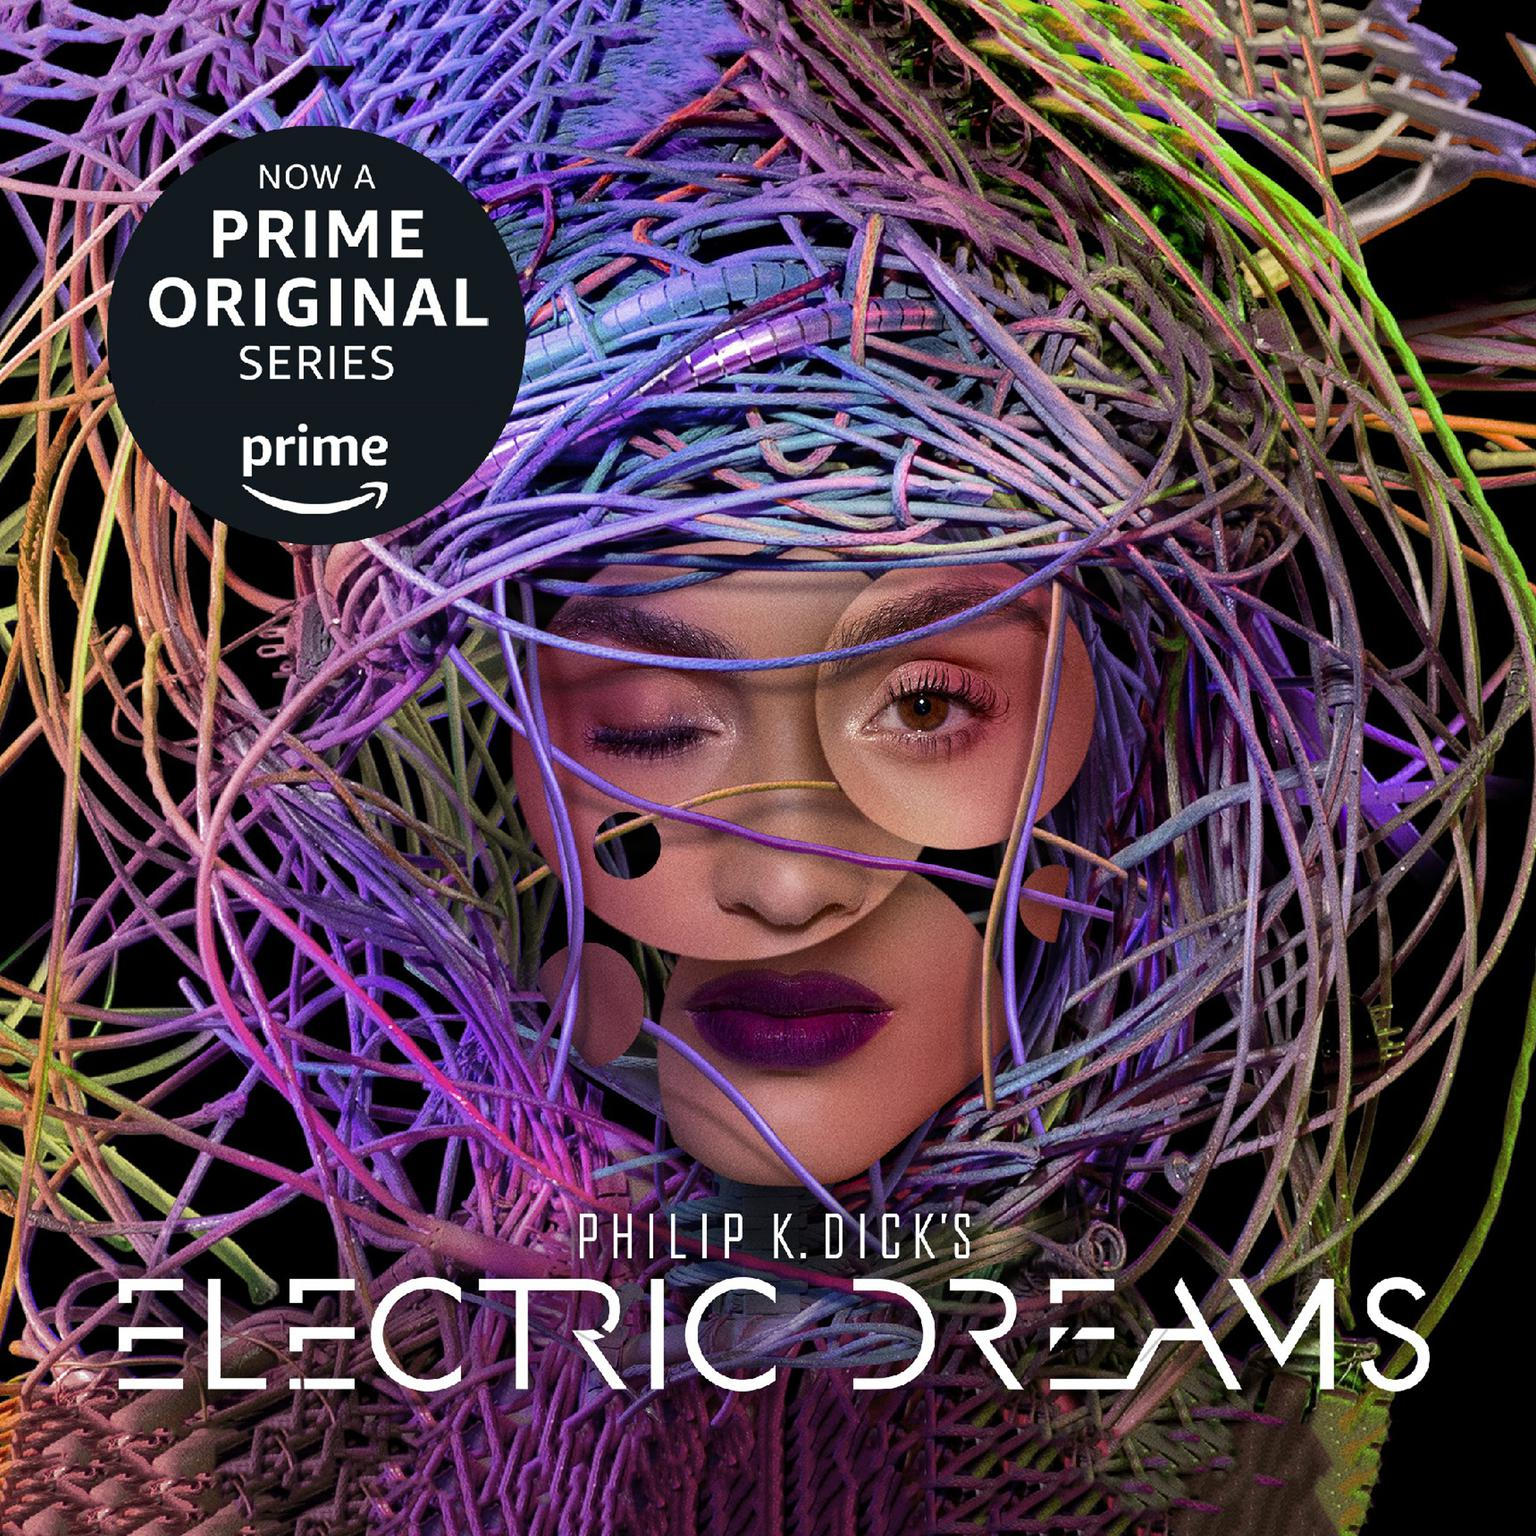 Printable Philip K. Dick's Electric Dreams Audiobook Cover Art